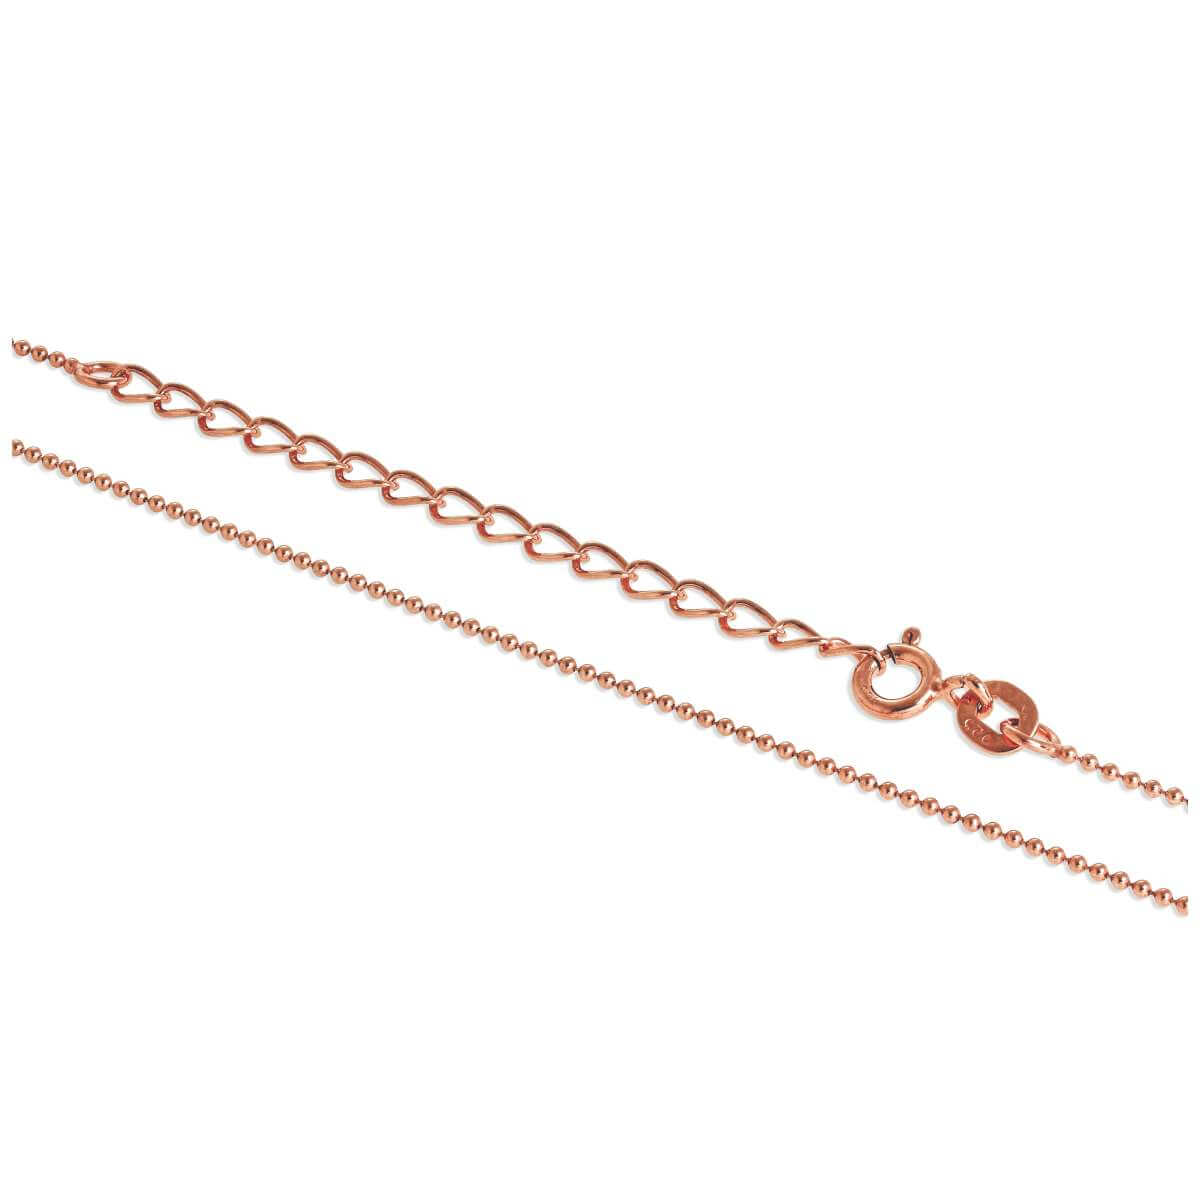 Rose Gold Plated Sterling Silver 1mm Bead Chain 16 + 2 Inches